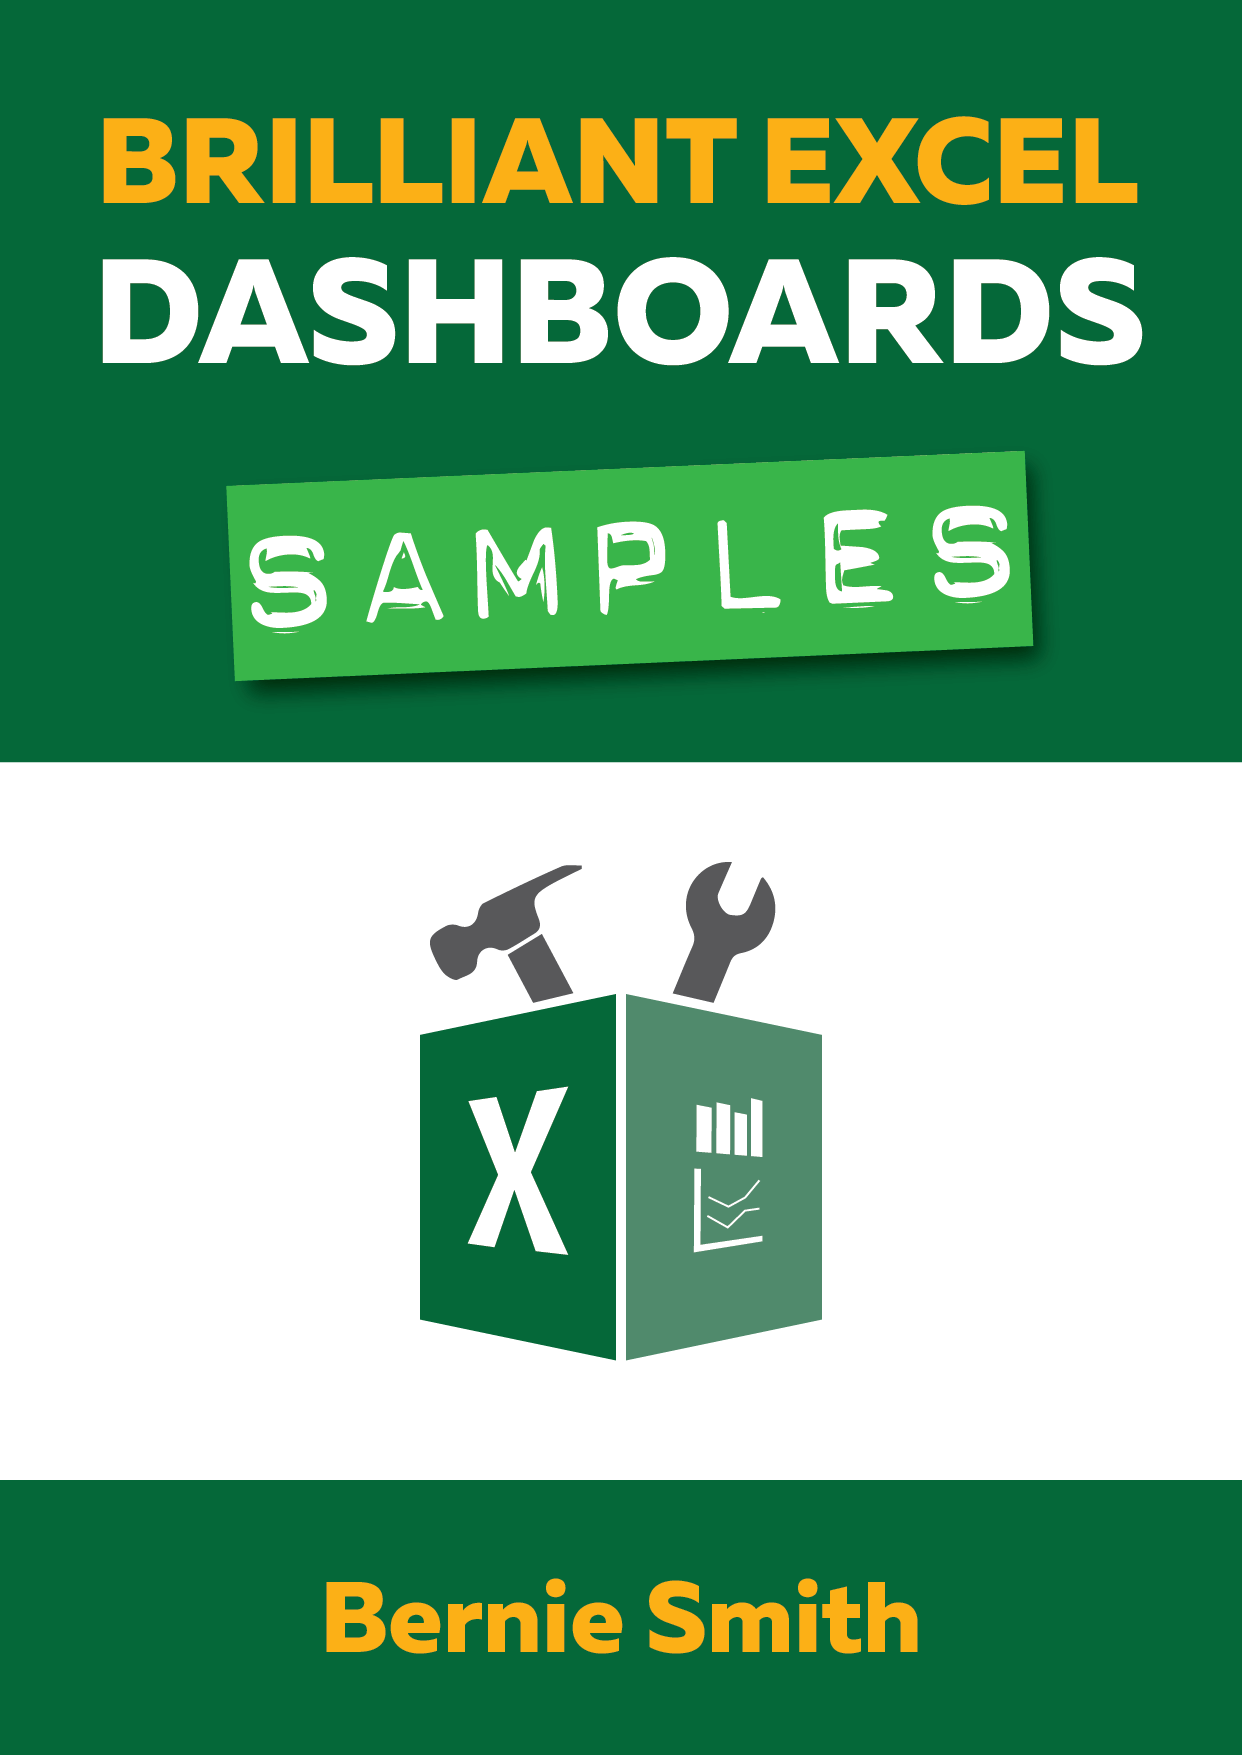 Brilliant Excel Dashboards Samples-01